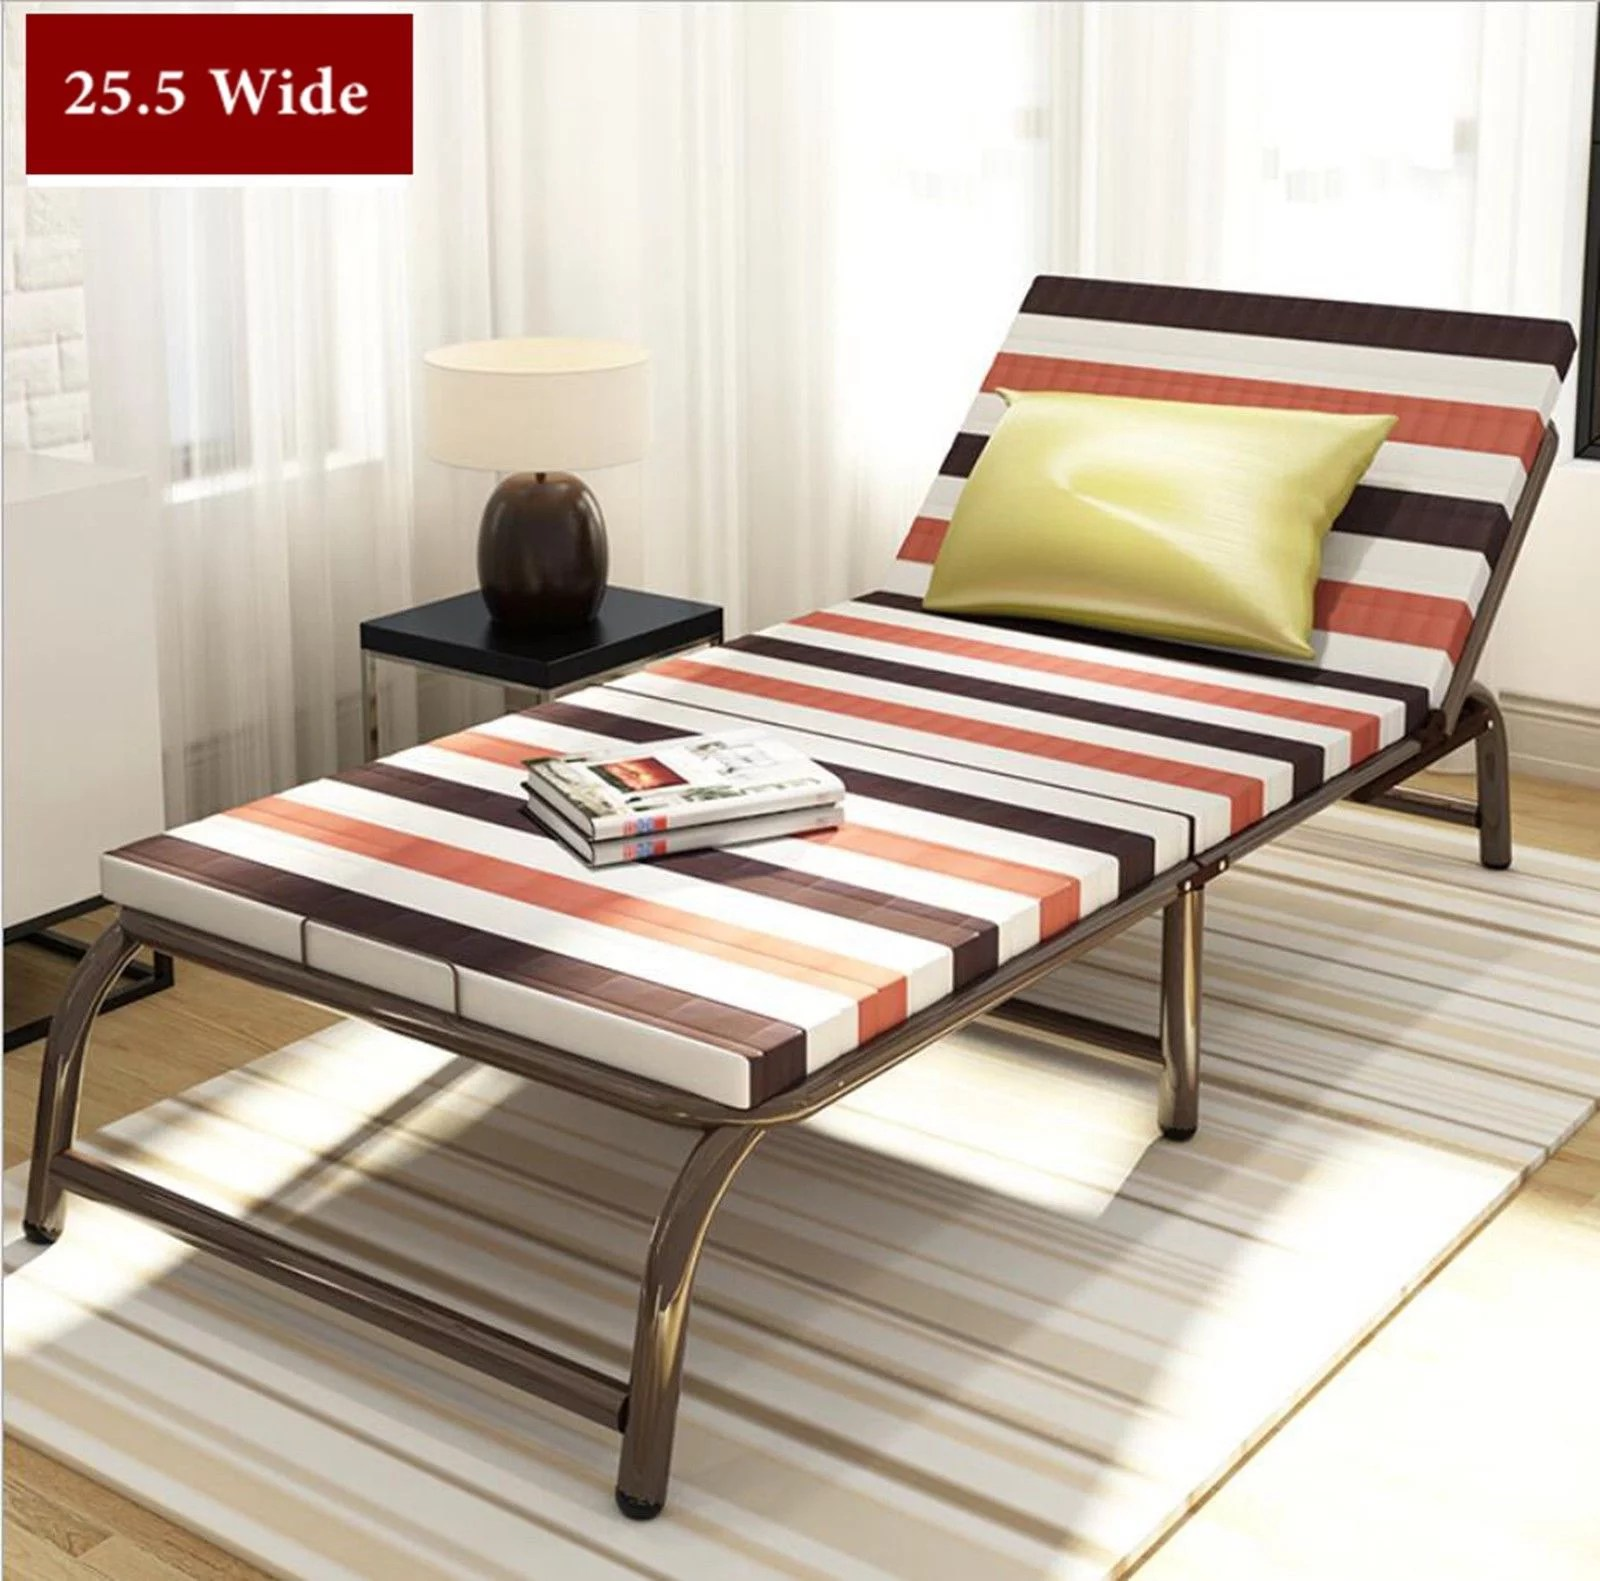 Portable Folding Bed With Frame Guest Bed Mattress Bedding